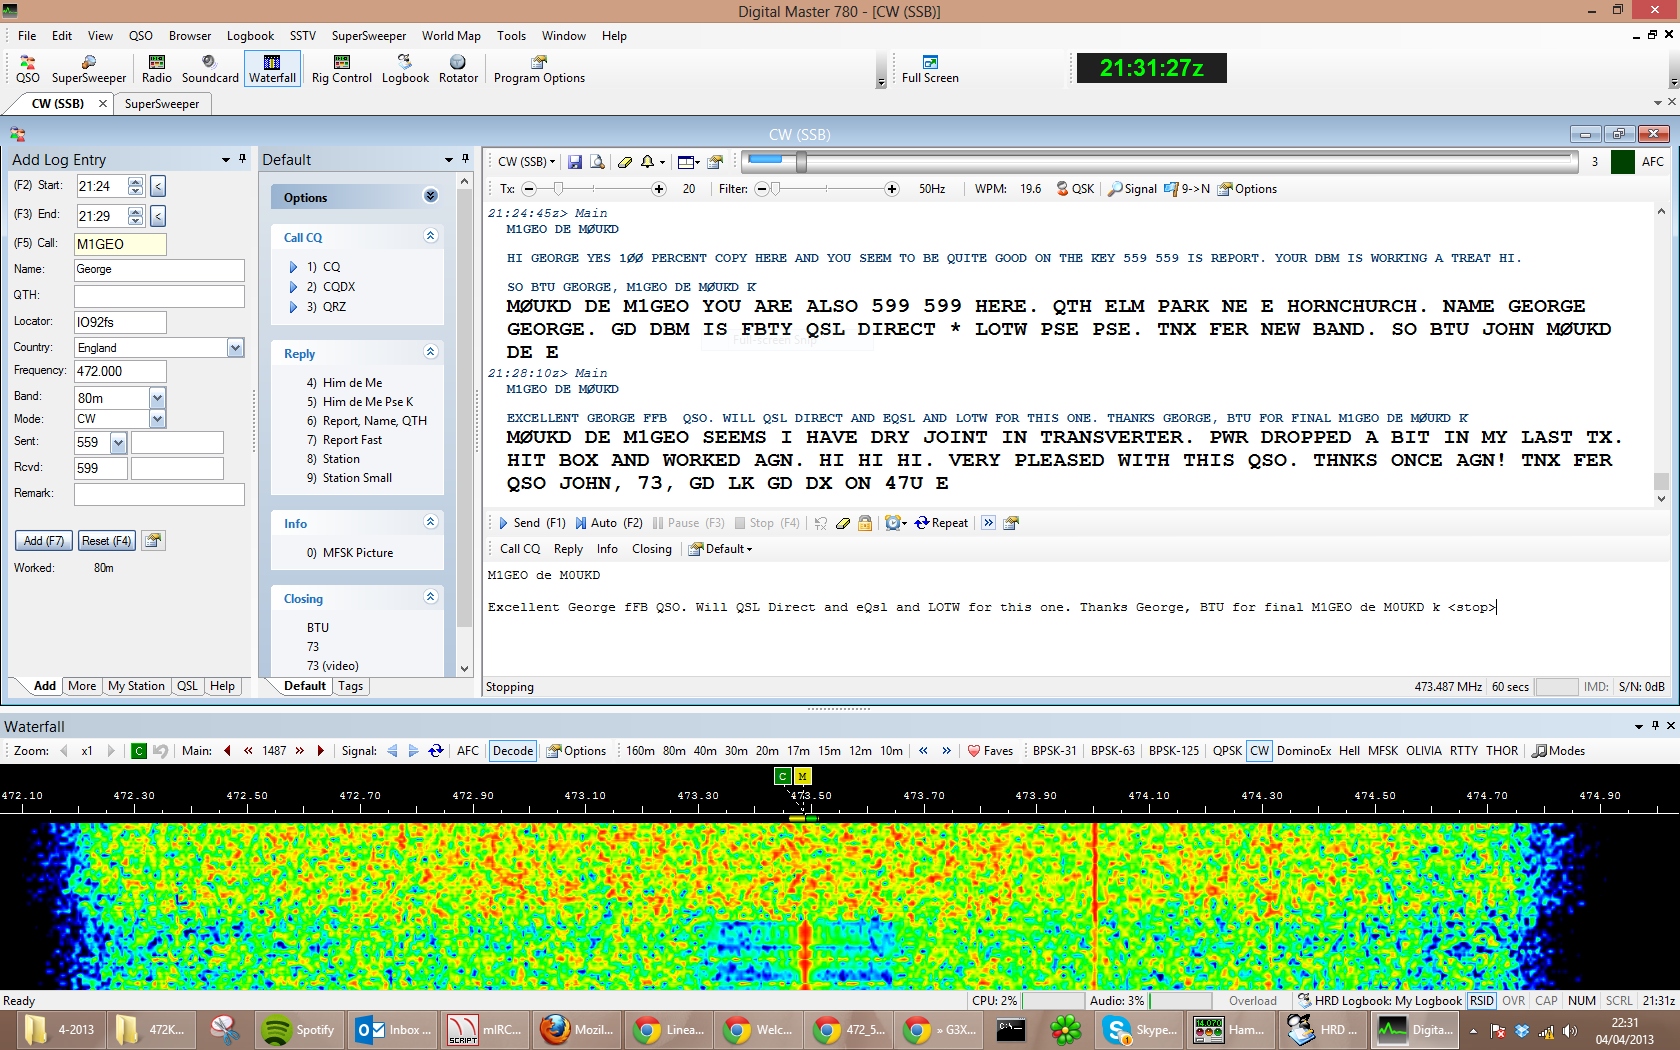 First QSO with M1GEO George at a distance of 2 miles!